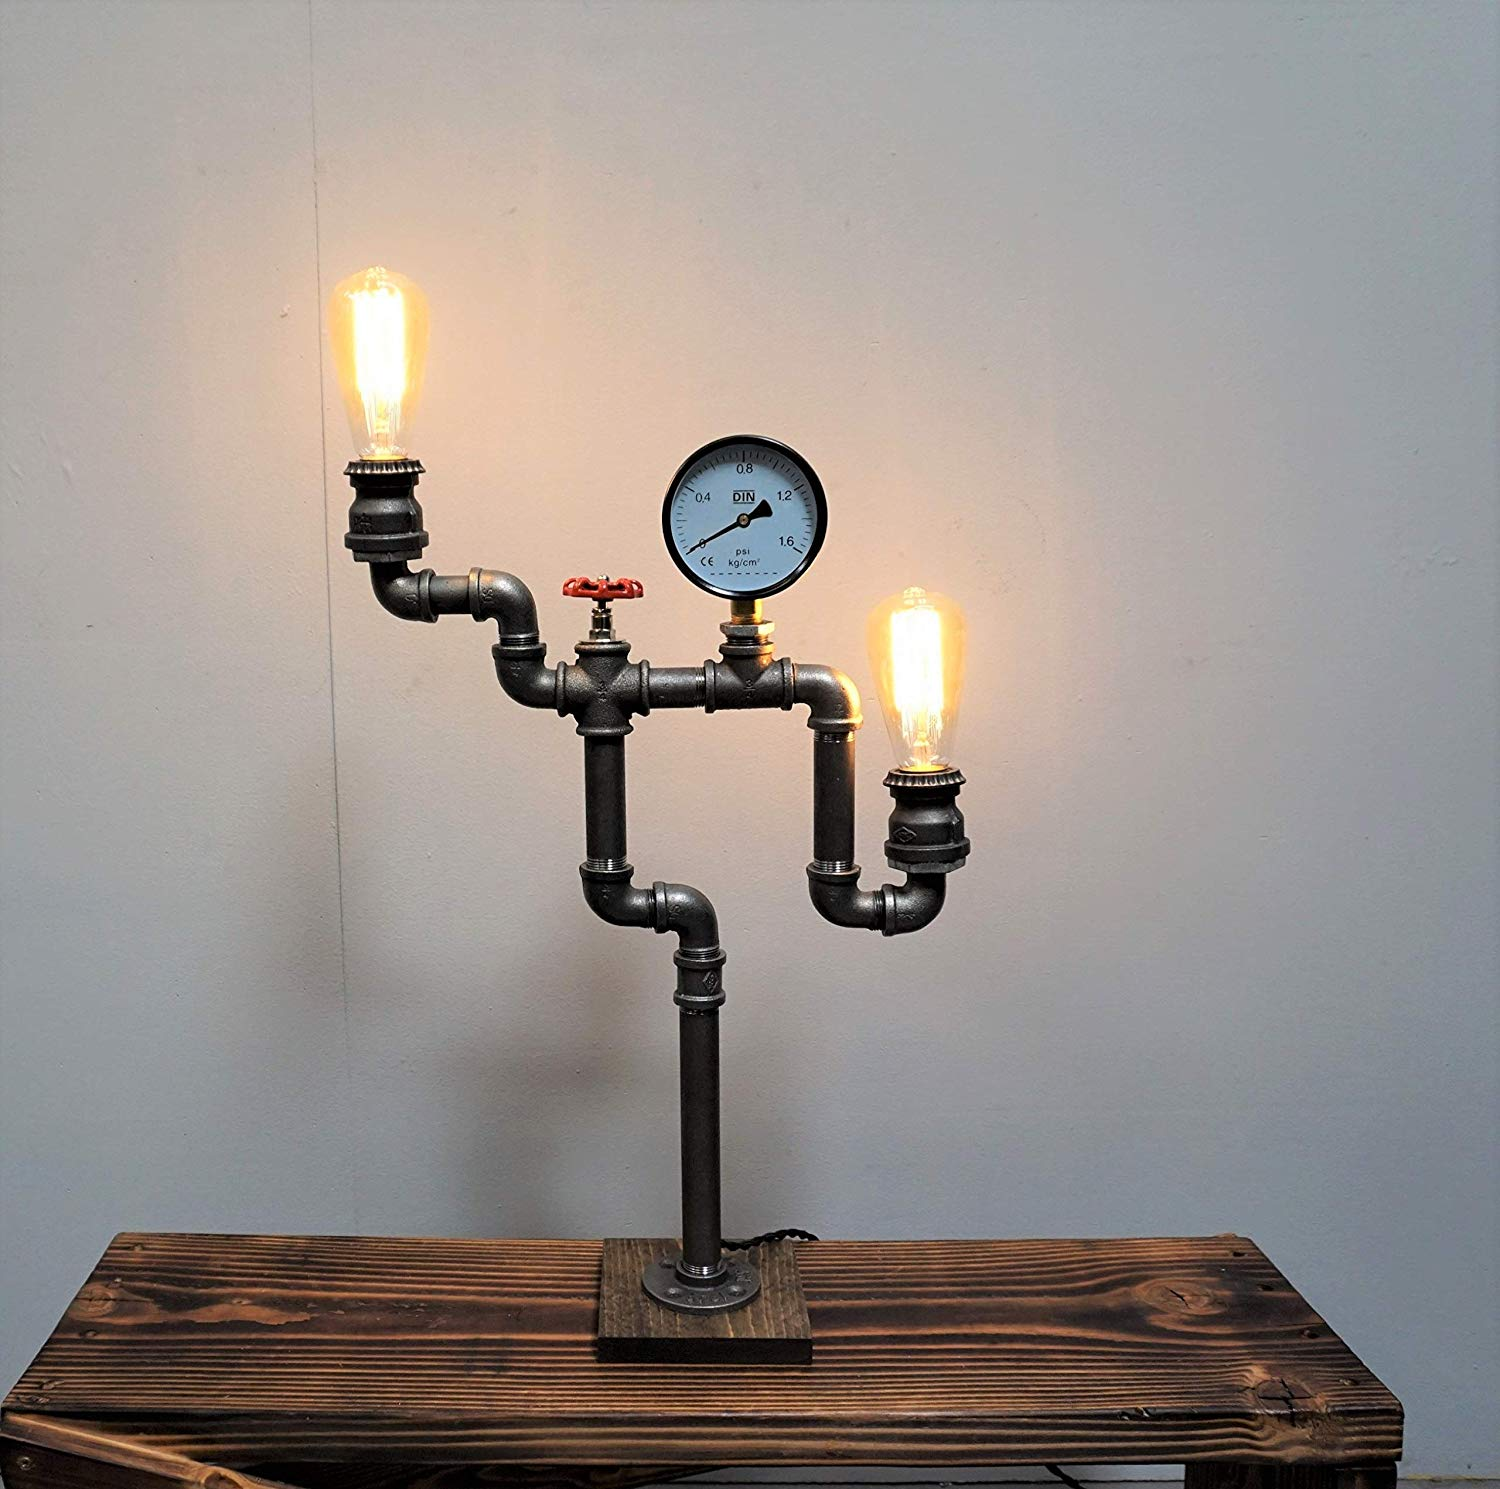 Industrial table lamp, industrial desk lamp, table lamp, desk lamp, edison table lamp, edison bulb table lamp, steampunk table lamp